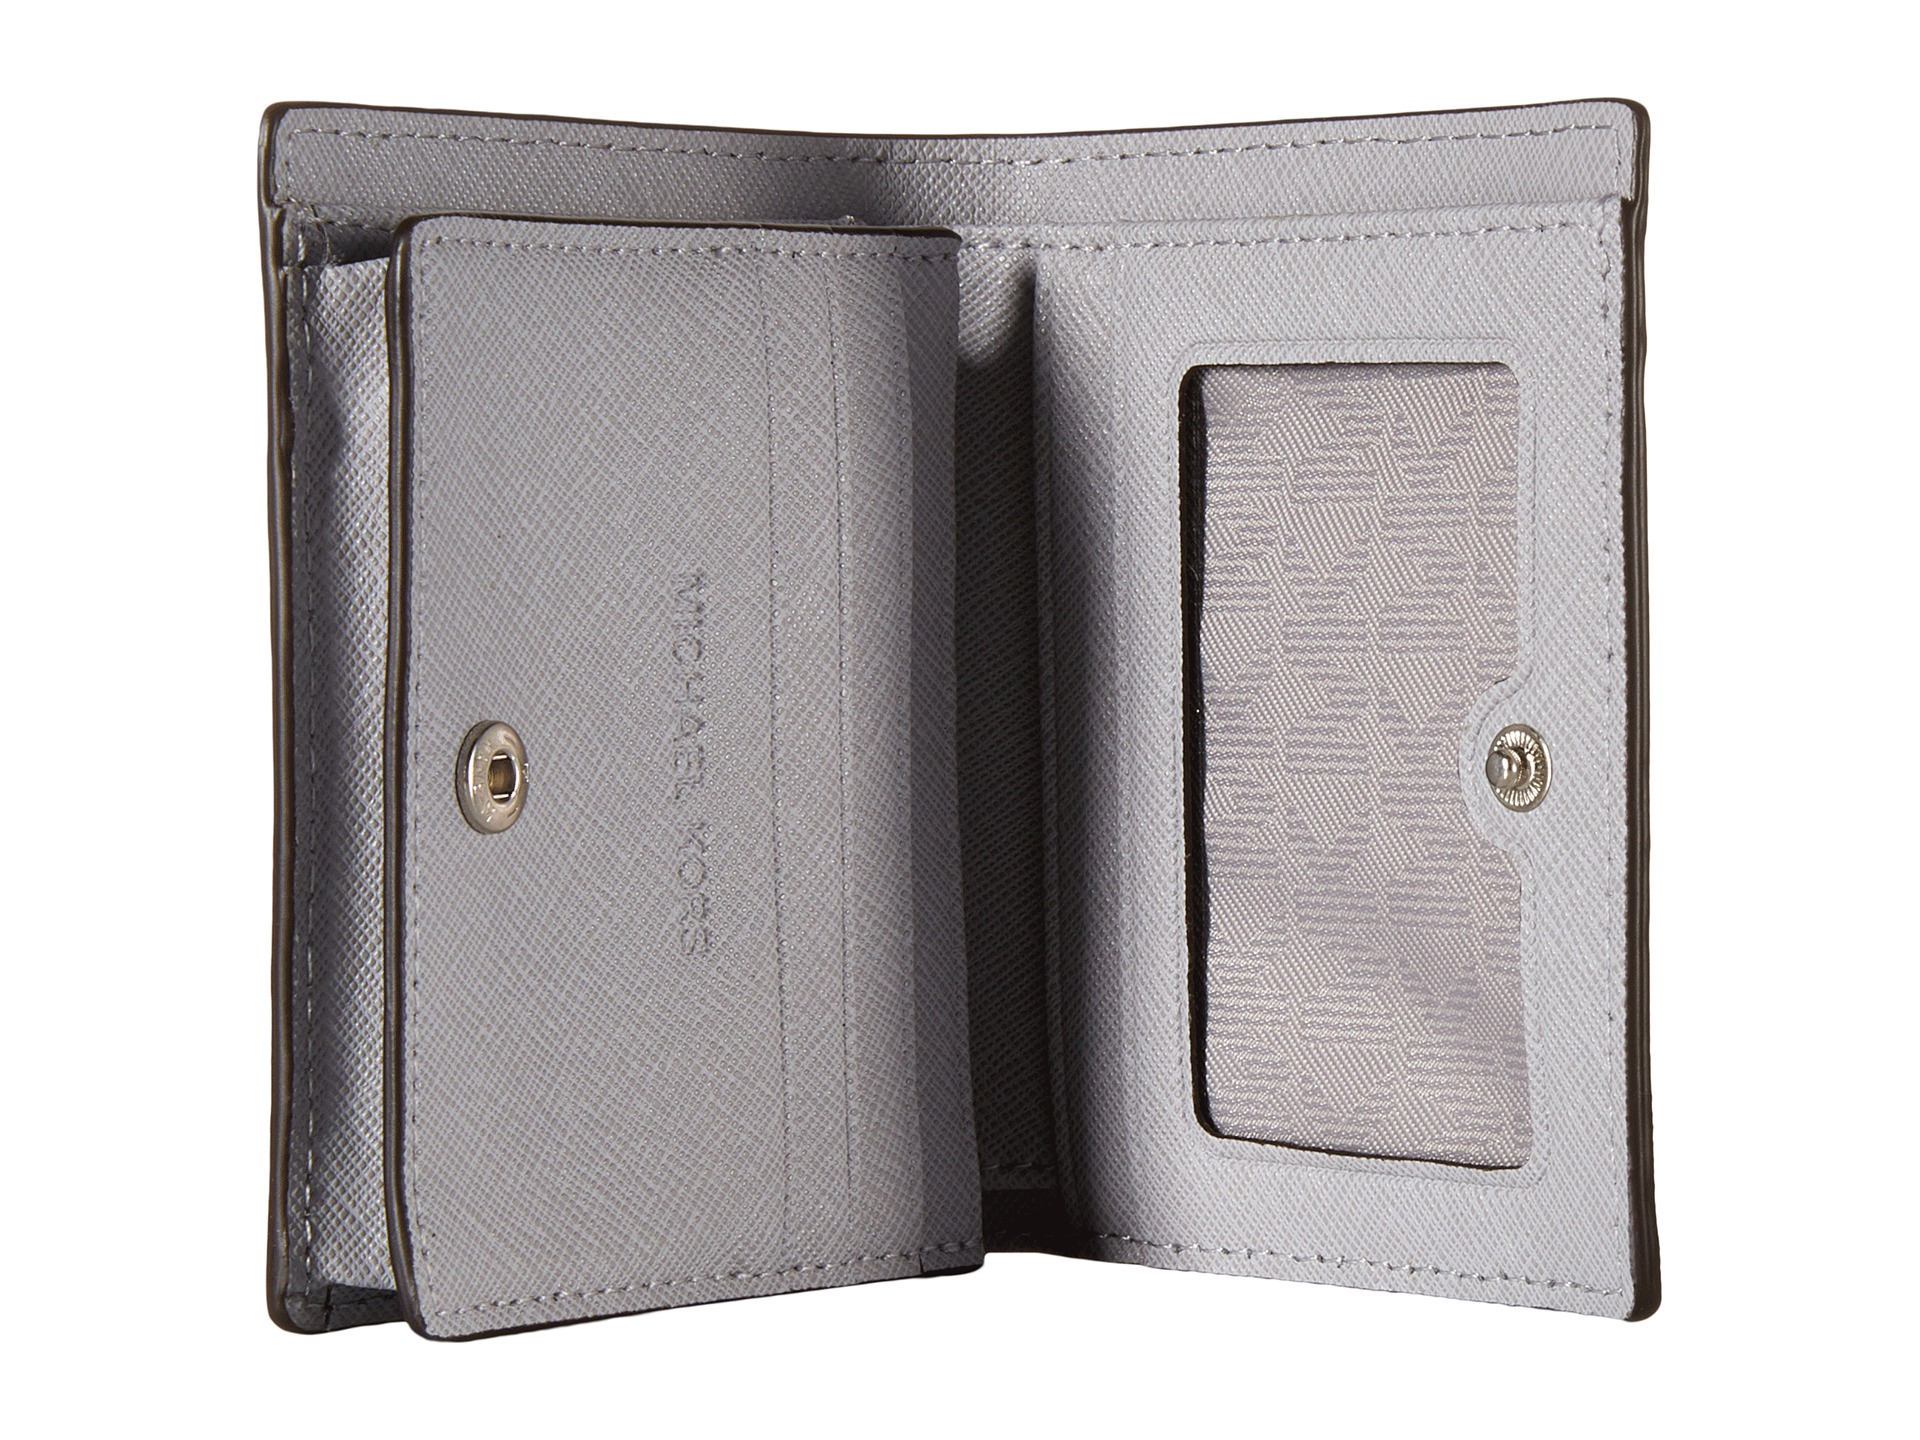 dac6c91cd58a4 Lyst - MICHAEL Michael Kors Jet Set Travel Flap Card Holder in Metallic